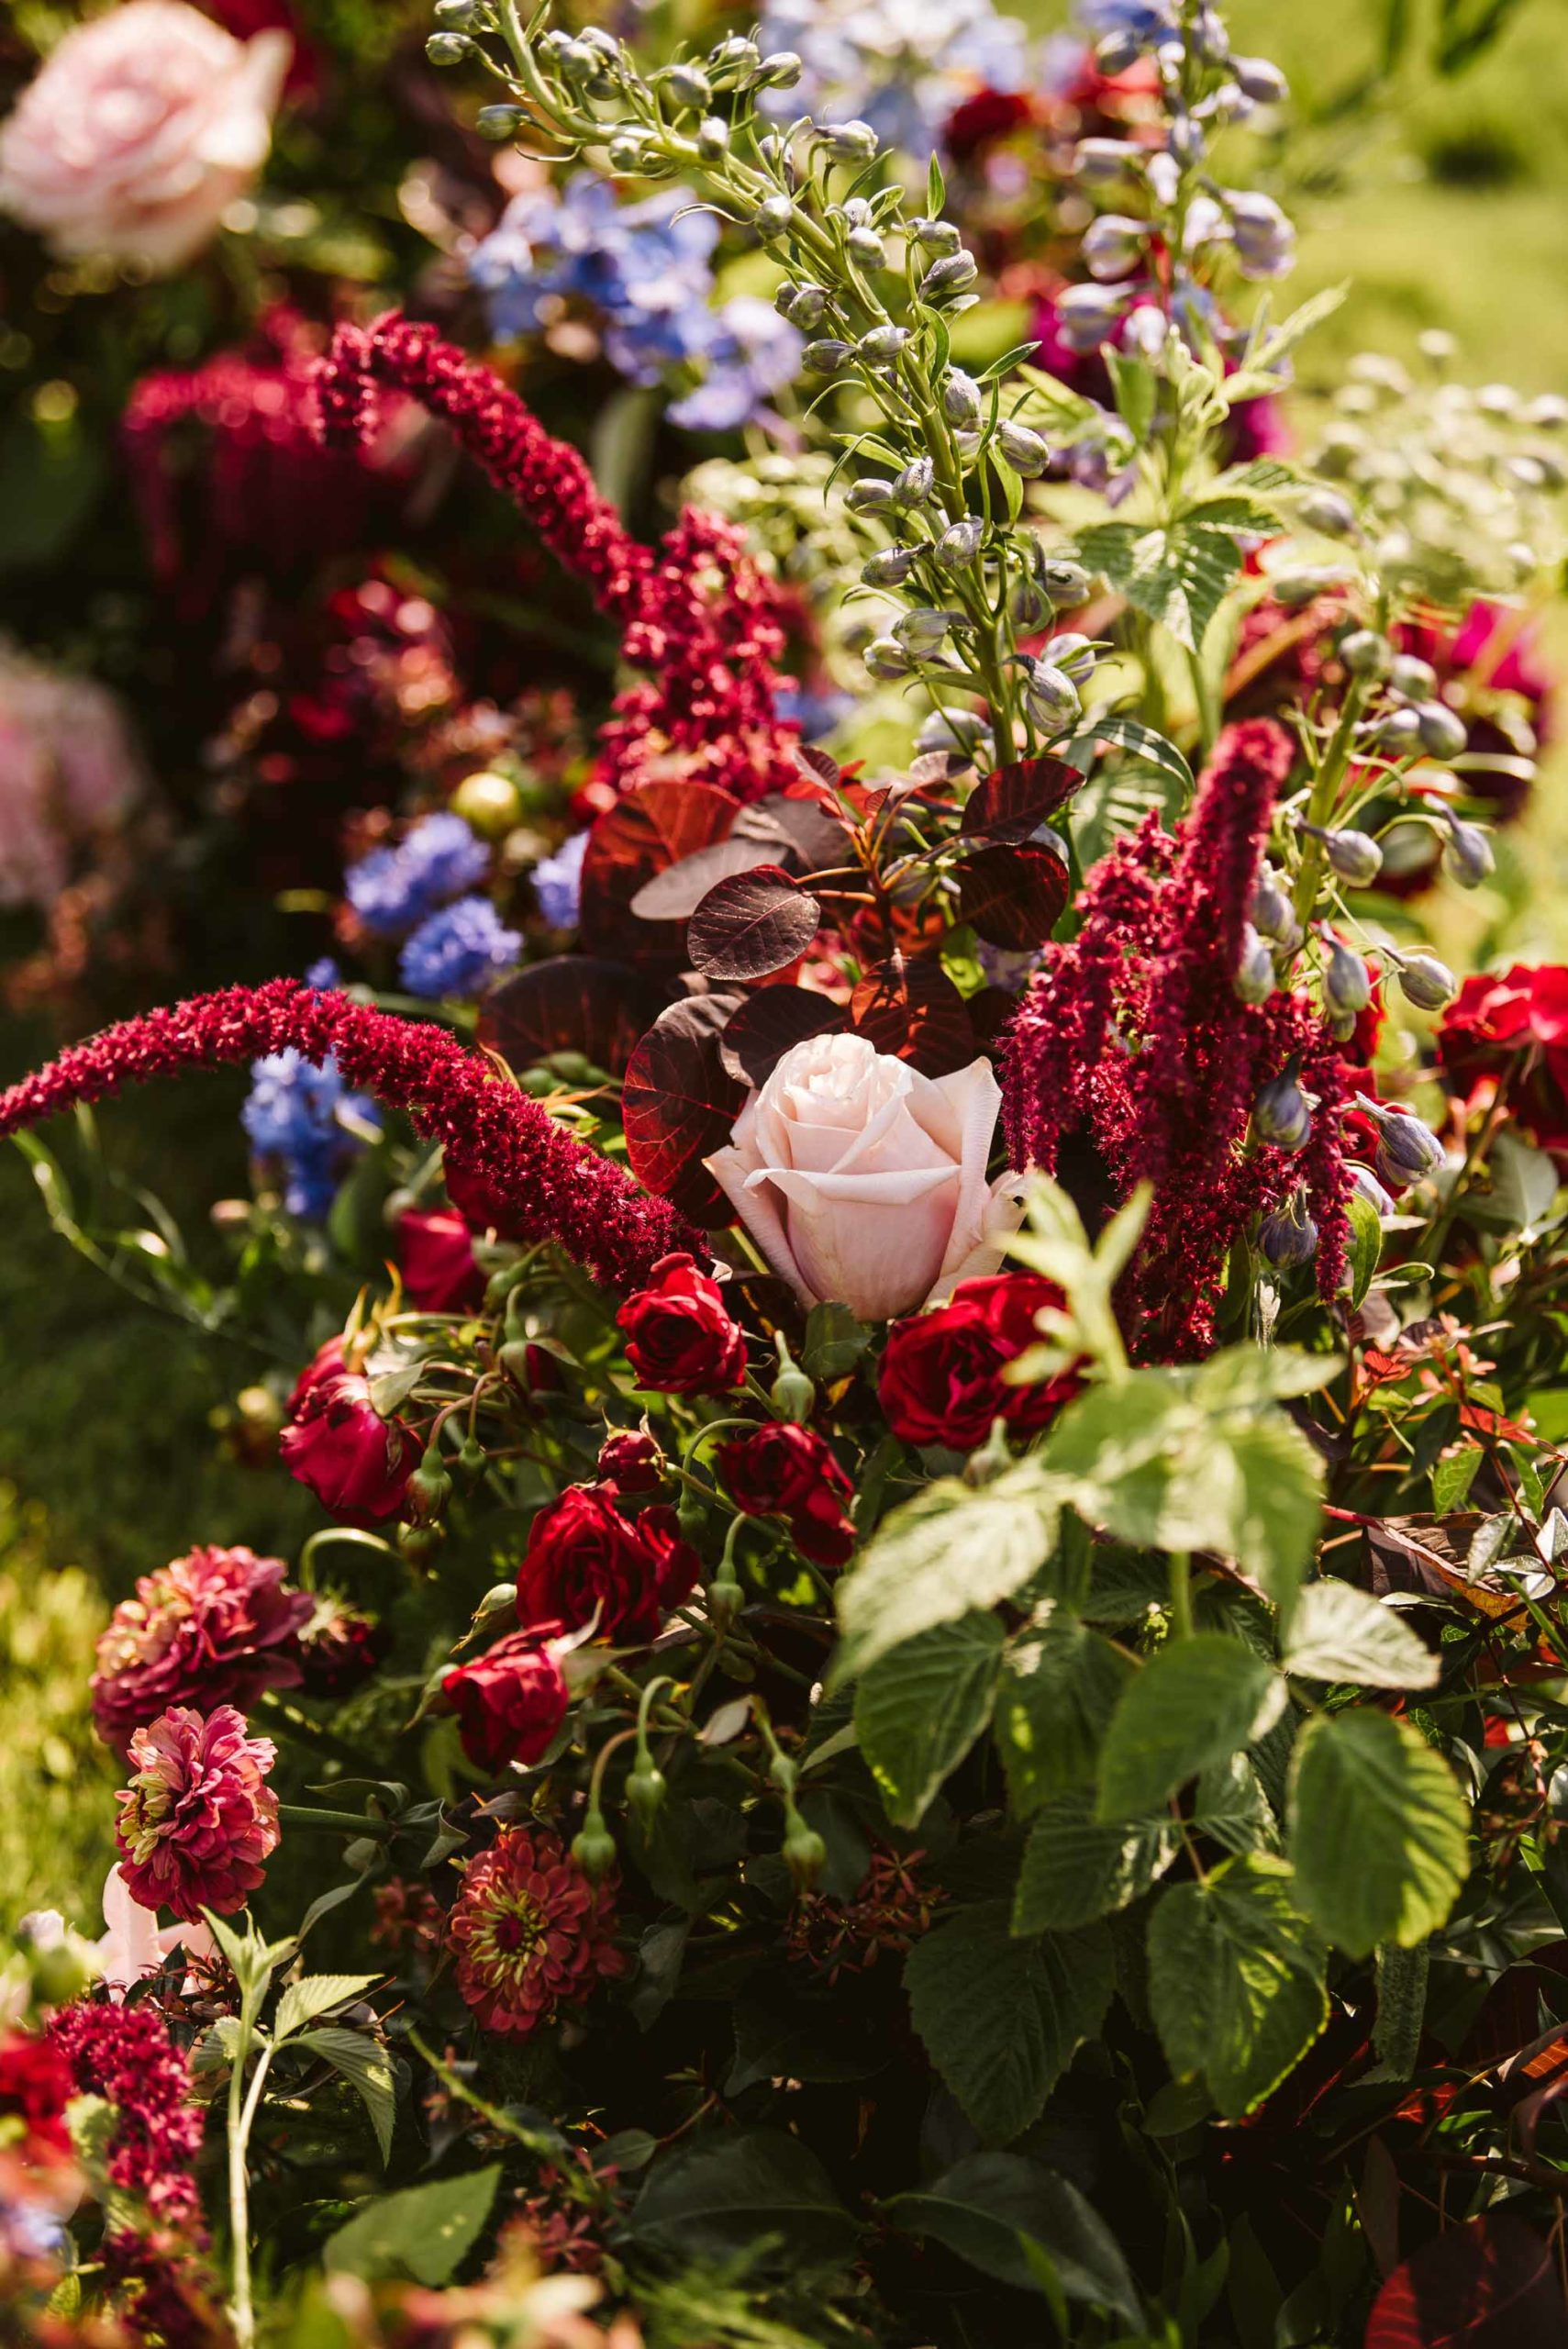 A close look at the burgundy and blush wedding flowers for a backyard ceremony on Lake Washington